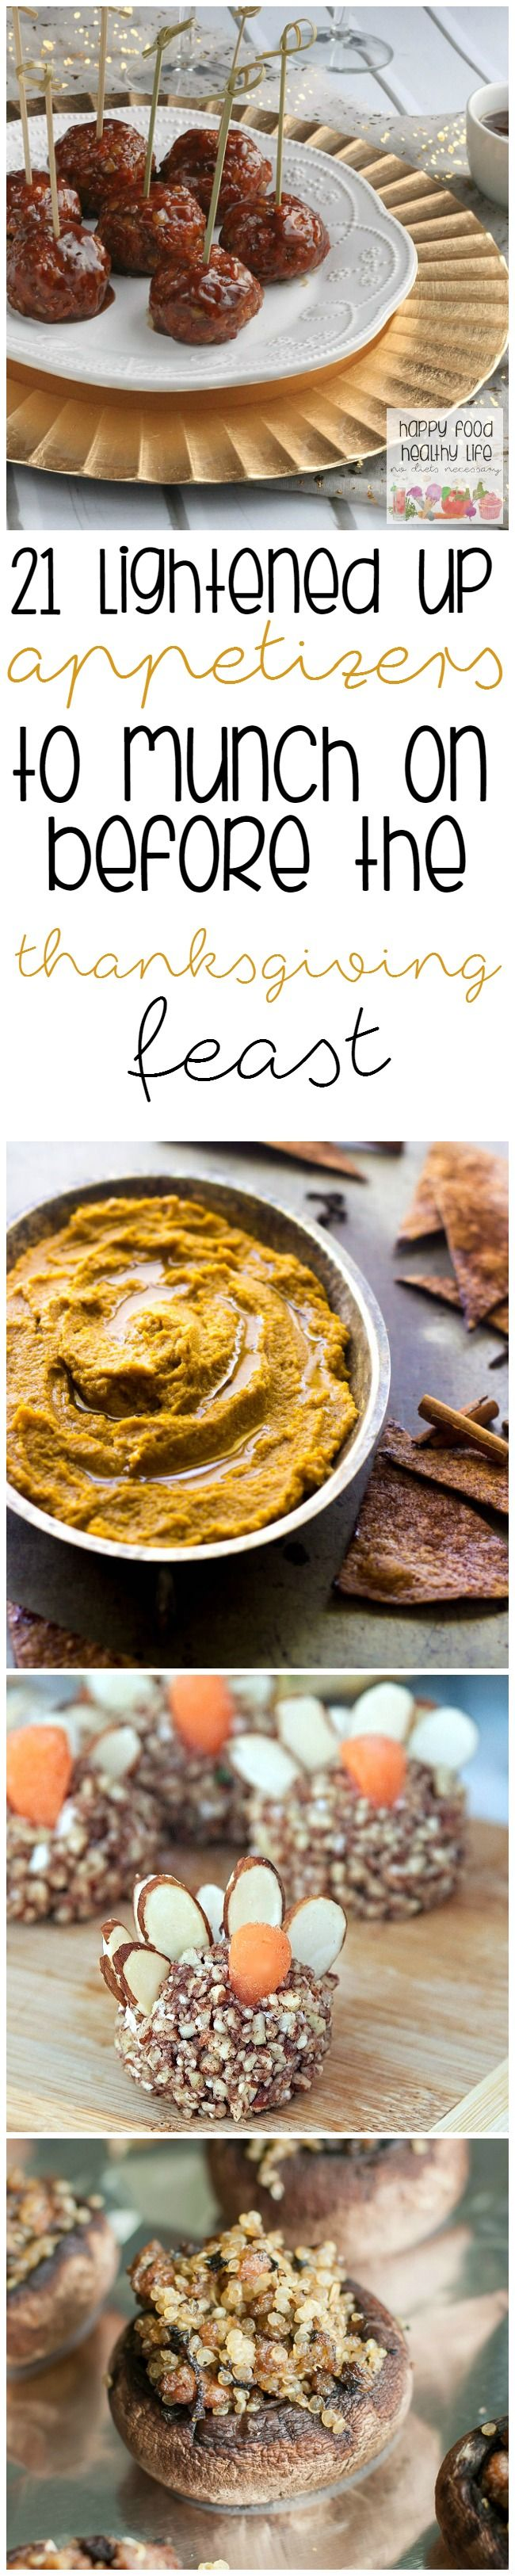 21 Lightened-Up Appetizers to Munch on Before the Thanksgiving Feast ~ Healthy recipes, perfect when you're waiting for dinner to be served!